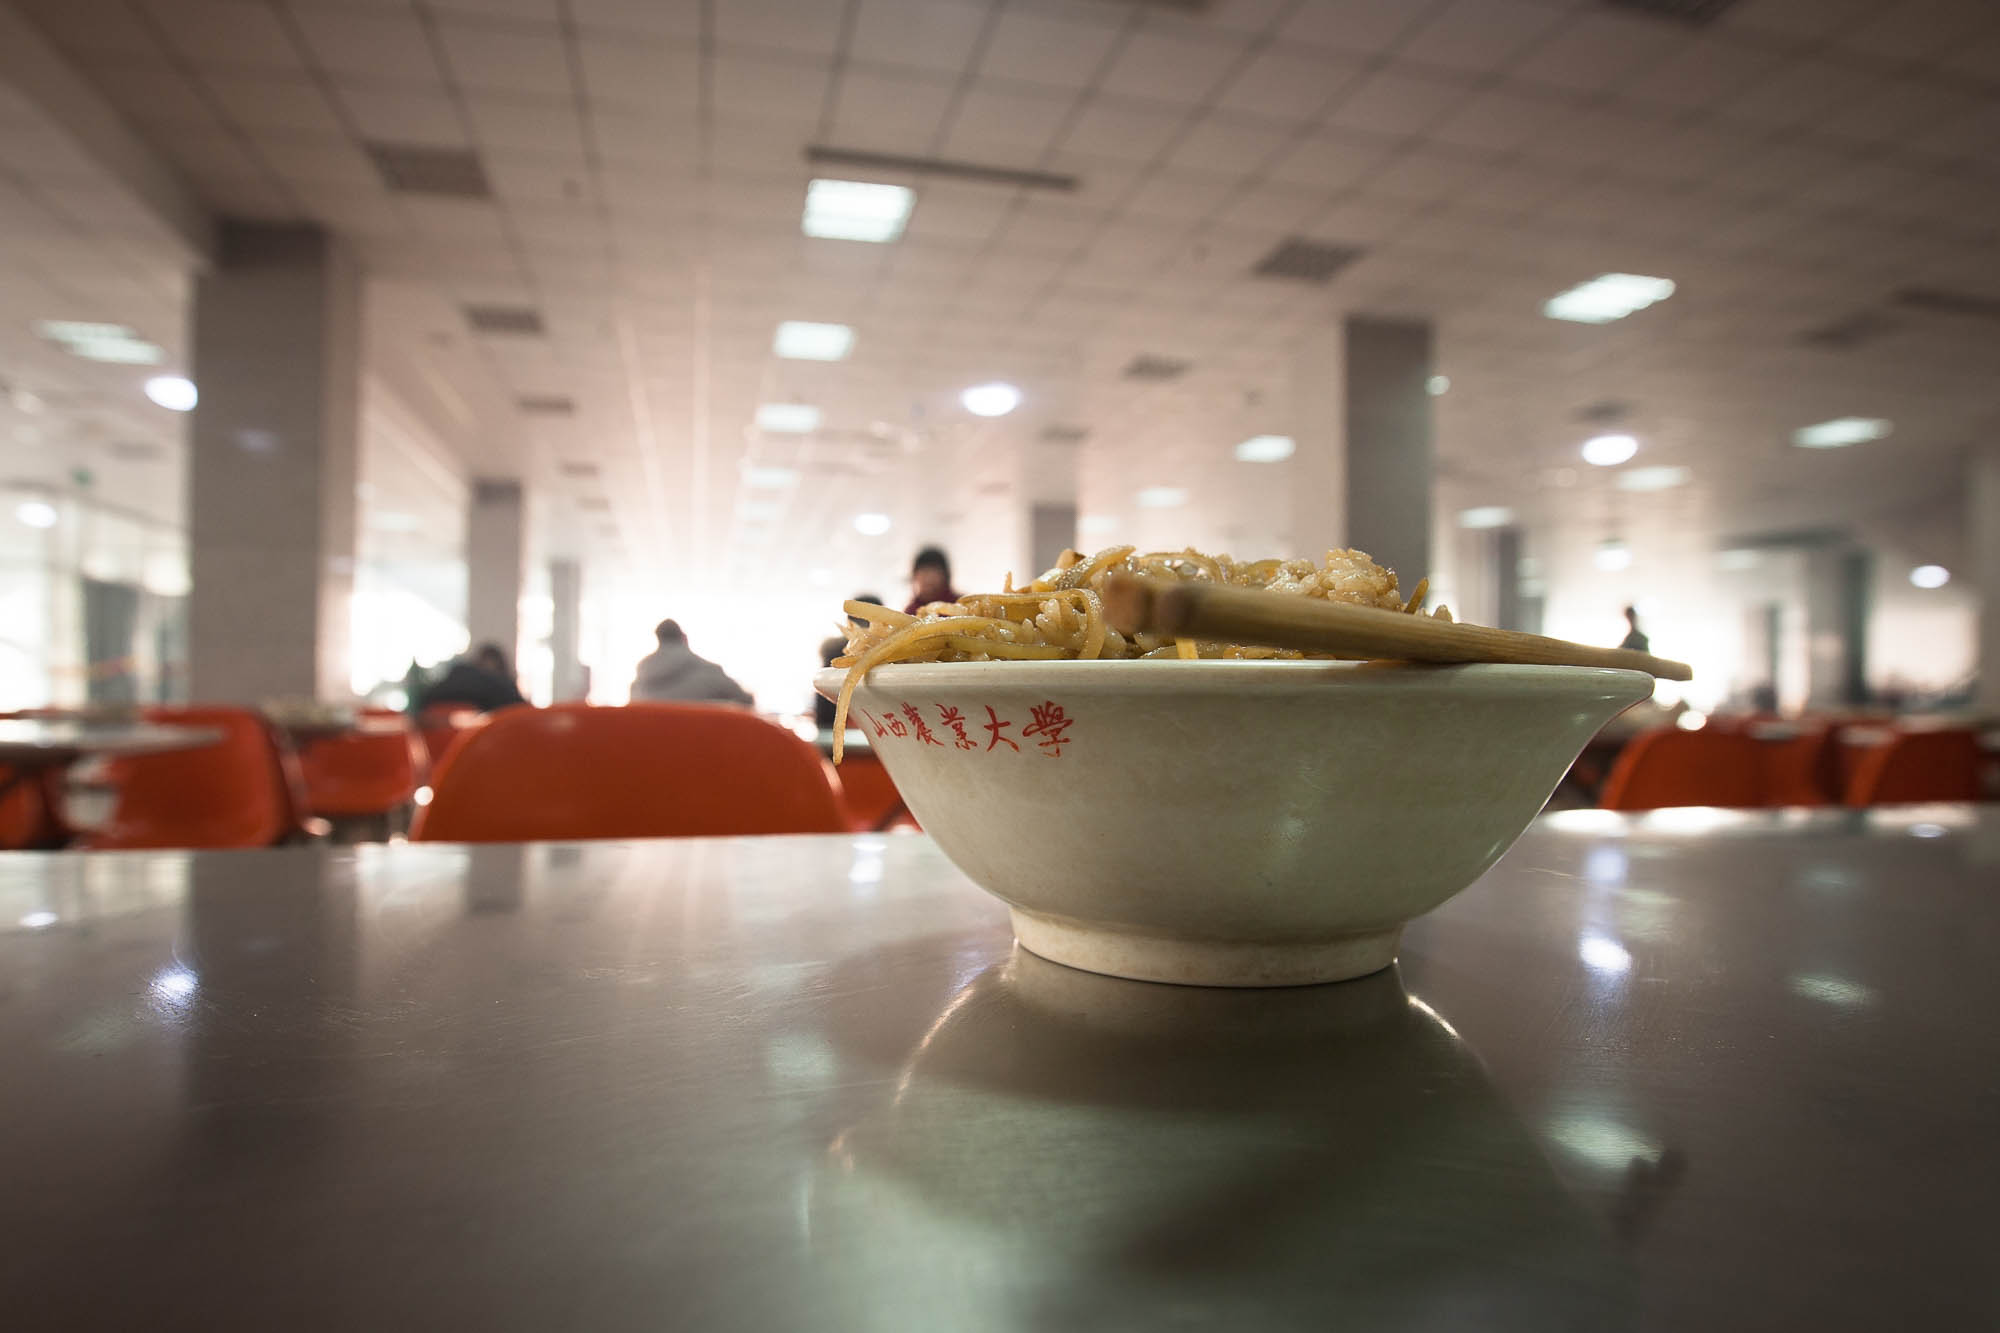 Agricultural University of Shanxi food court